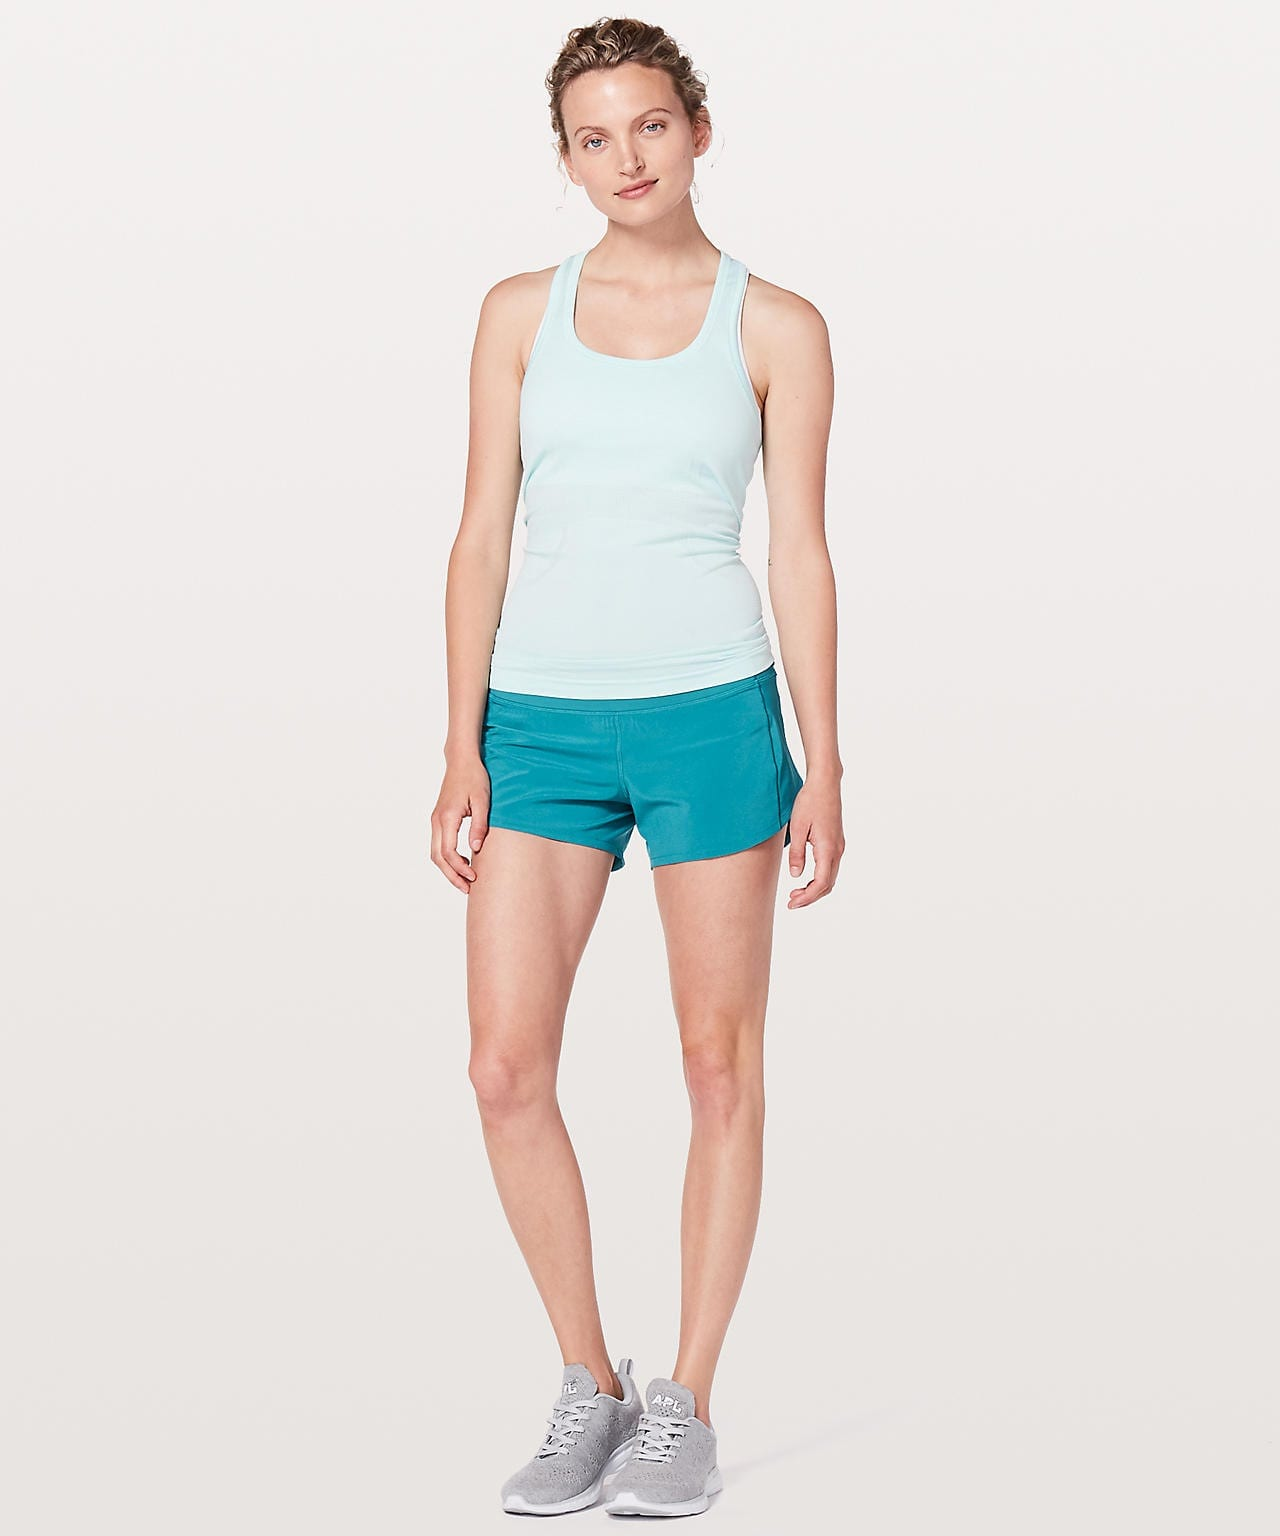 Lululemon Speed Up Short (Long) Teal Blue